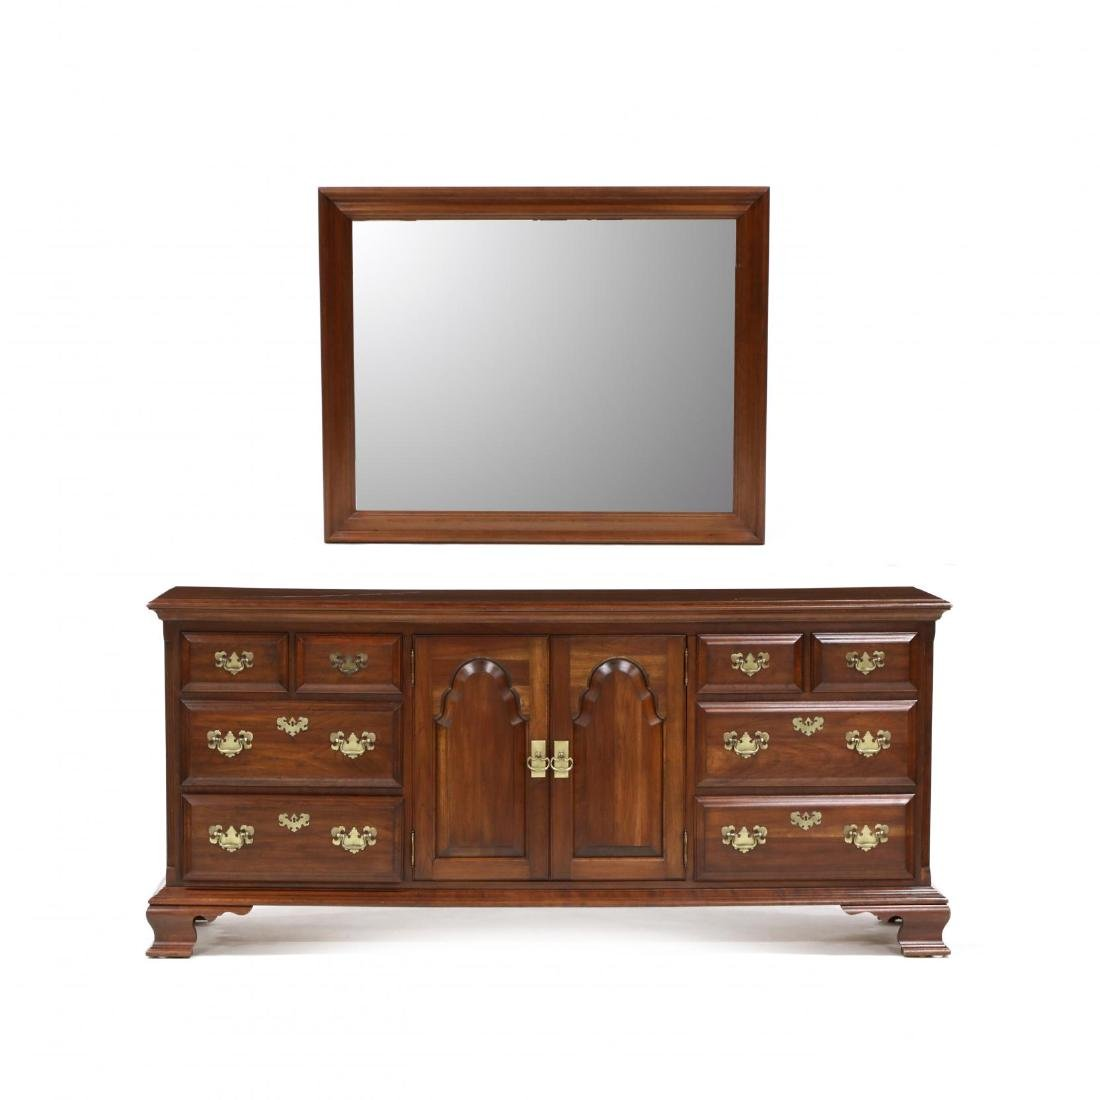 Pennsylvania House, Chippendale Style Cherry Dresser